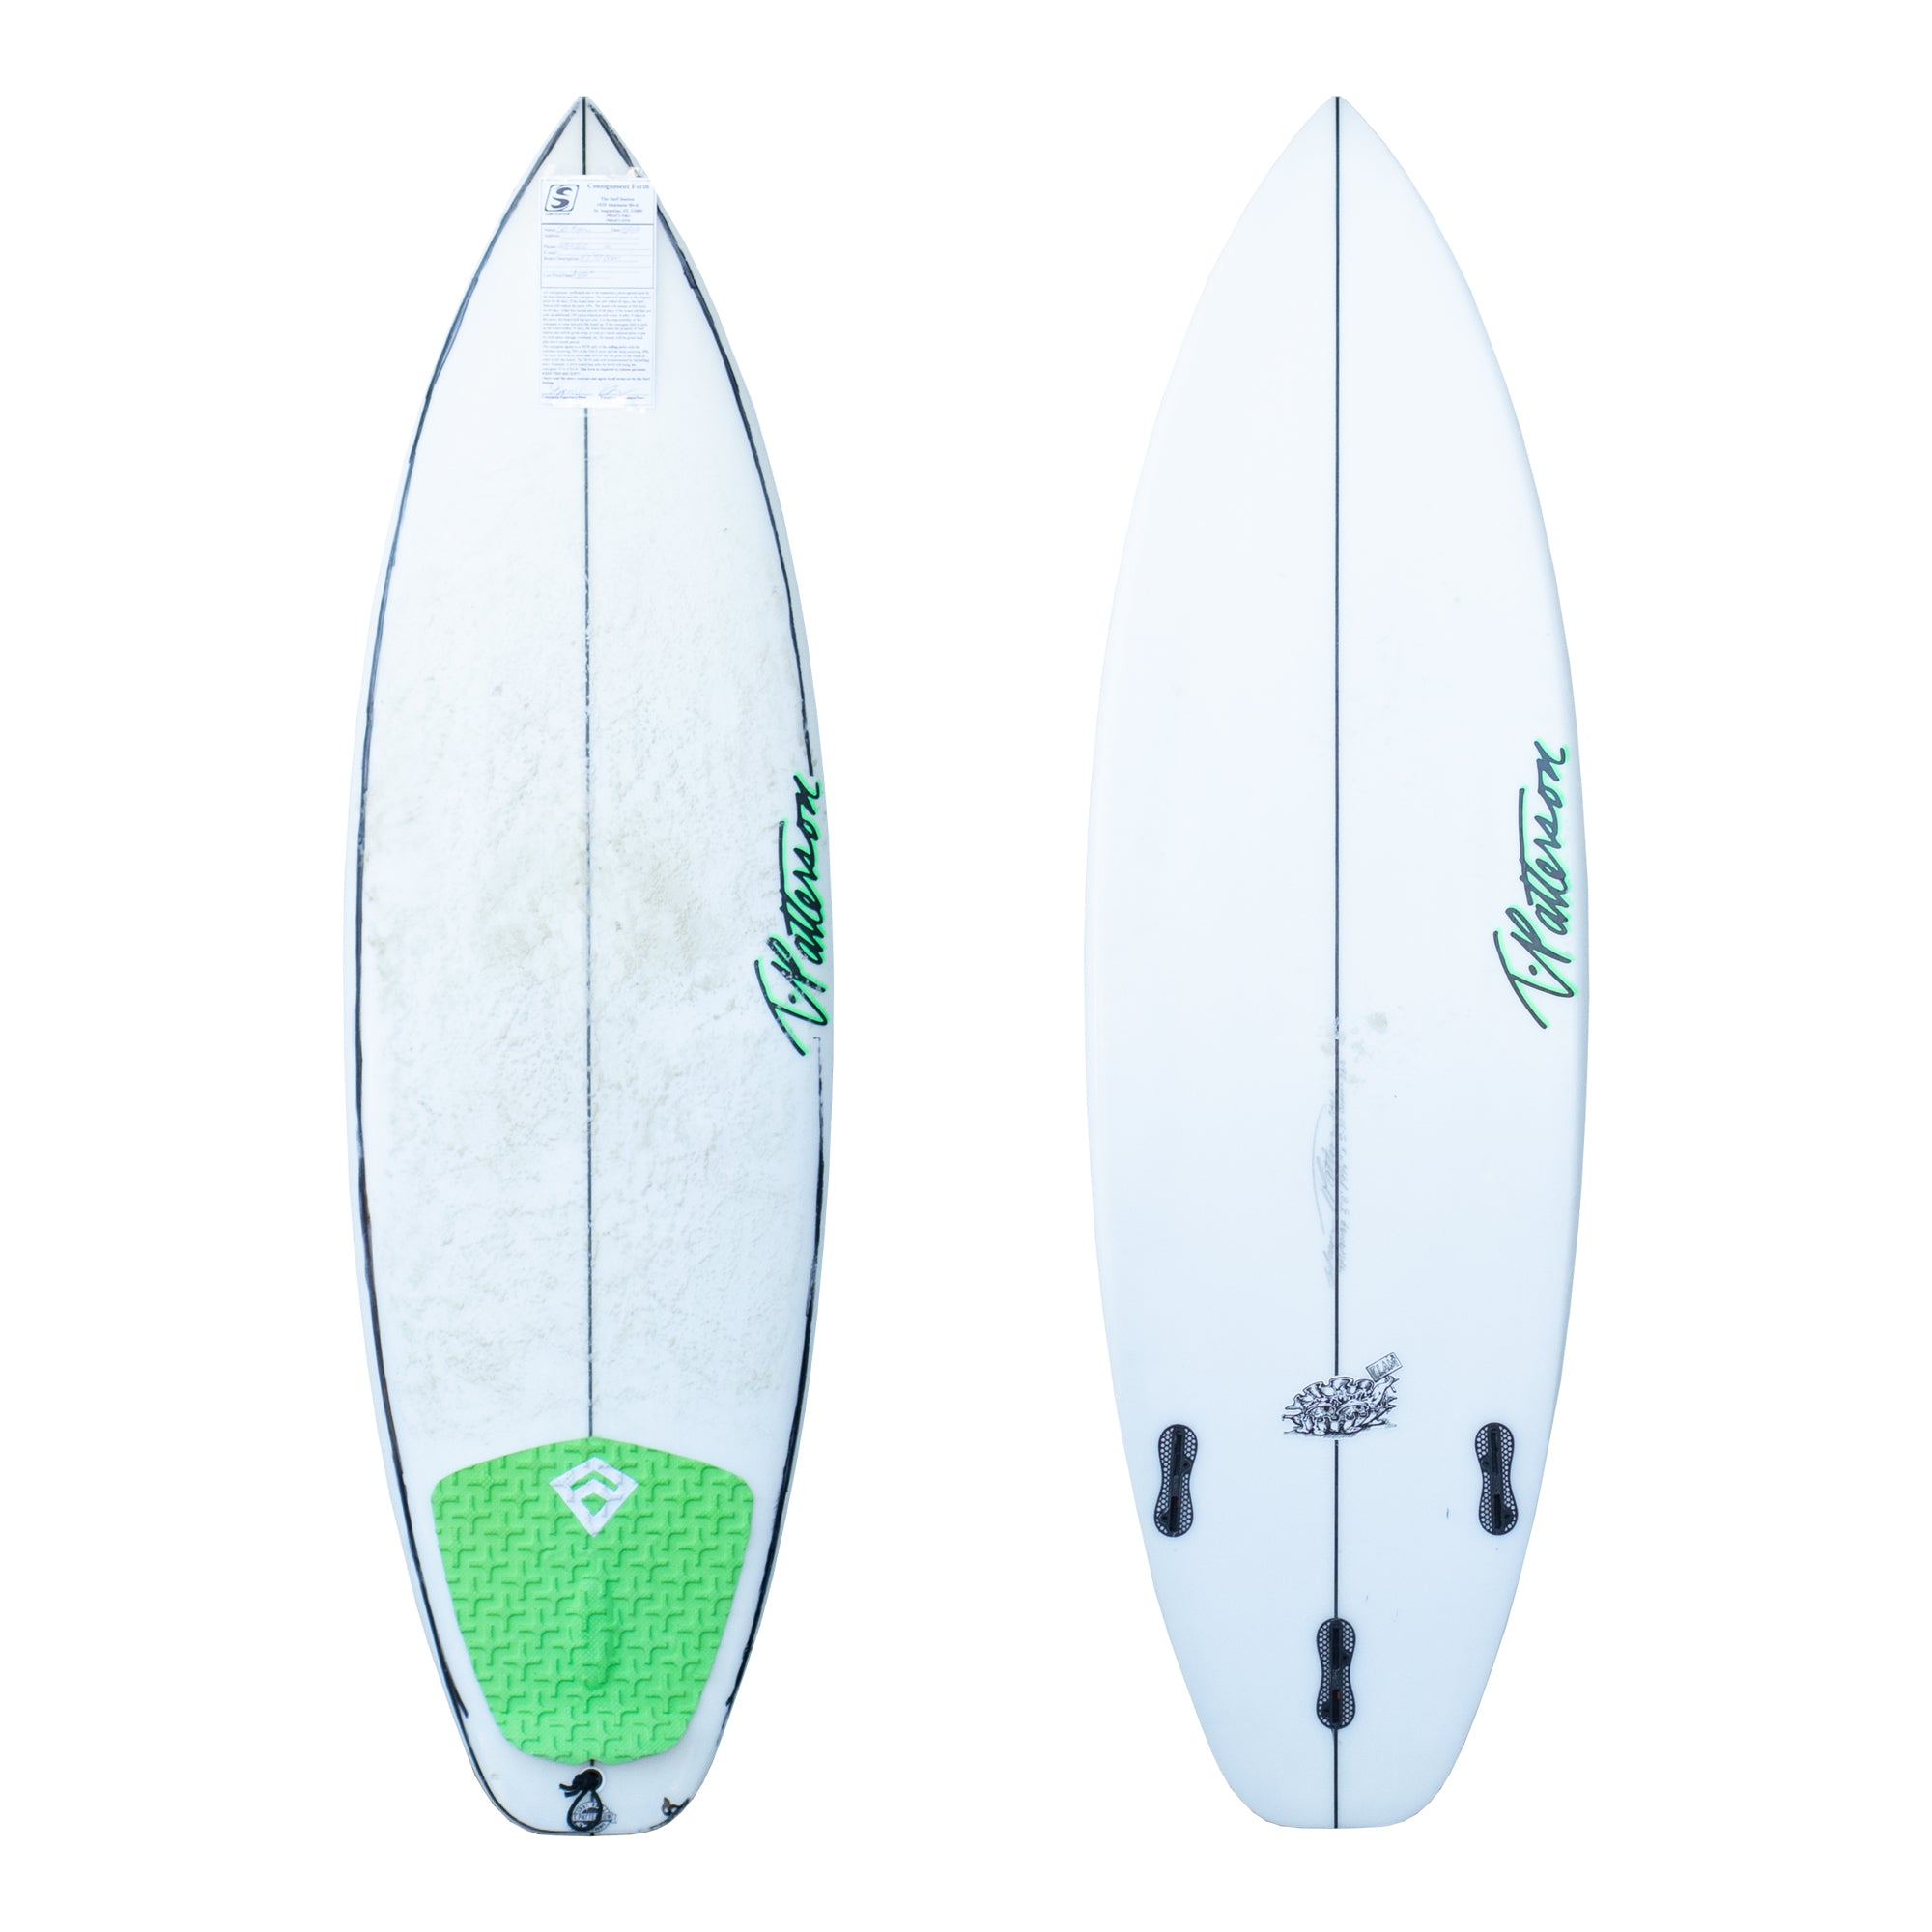 T. Patterson Clam 5'8 Used Surfboard